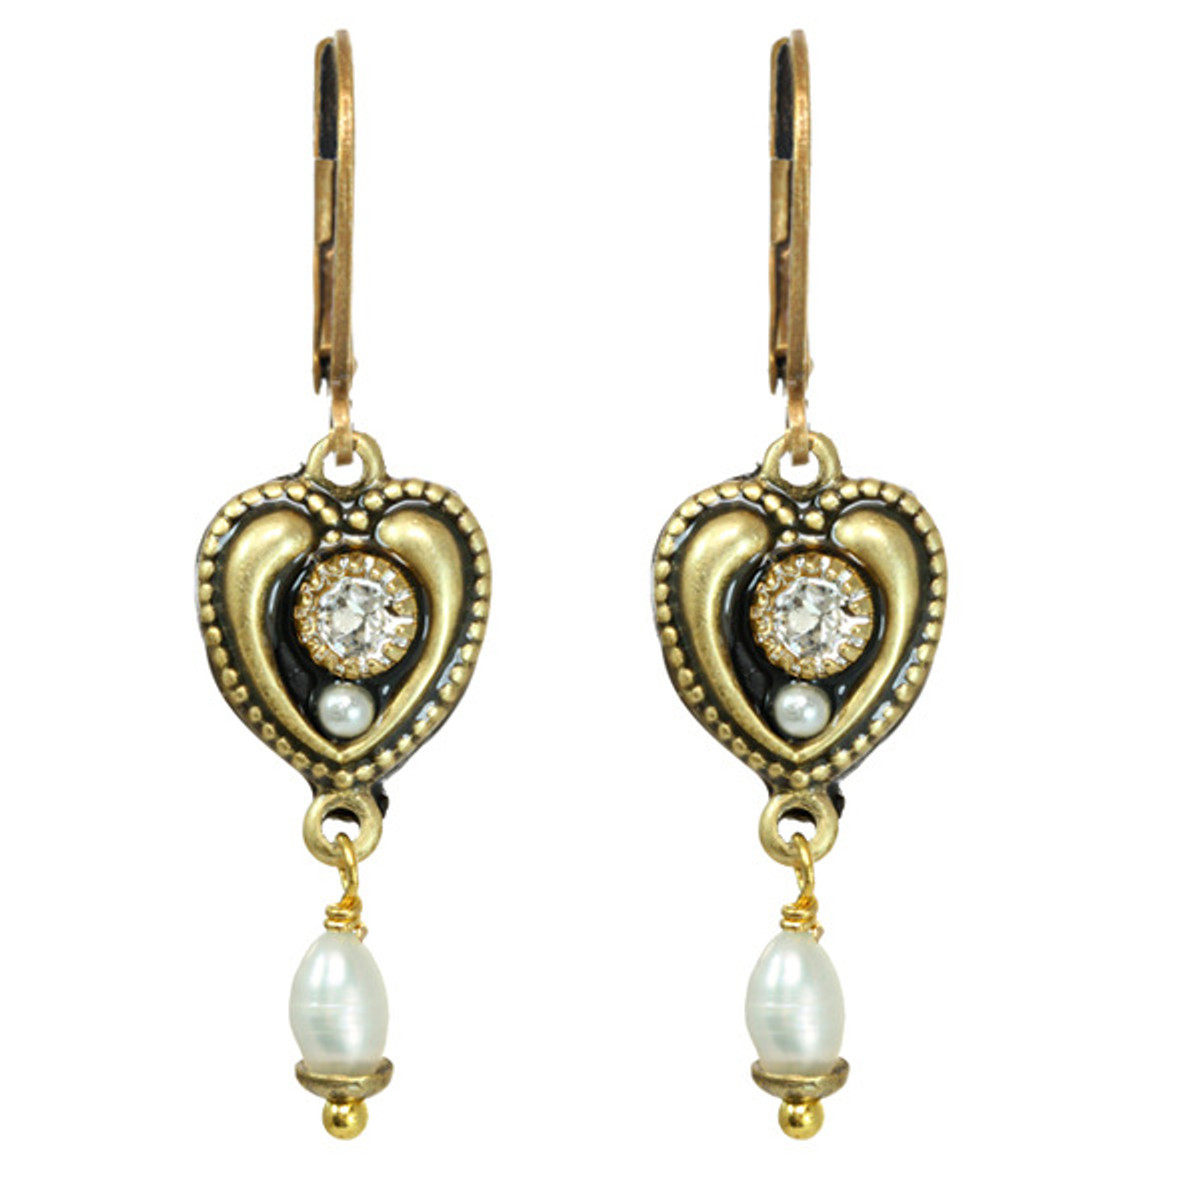 Gorgeous Deco Earrings From Michal Golan Jewelry